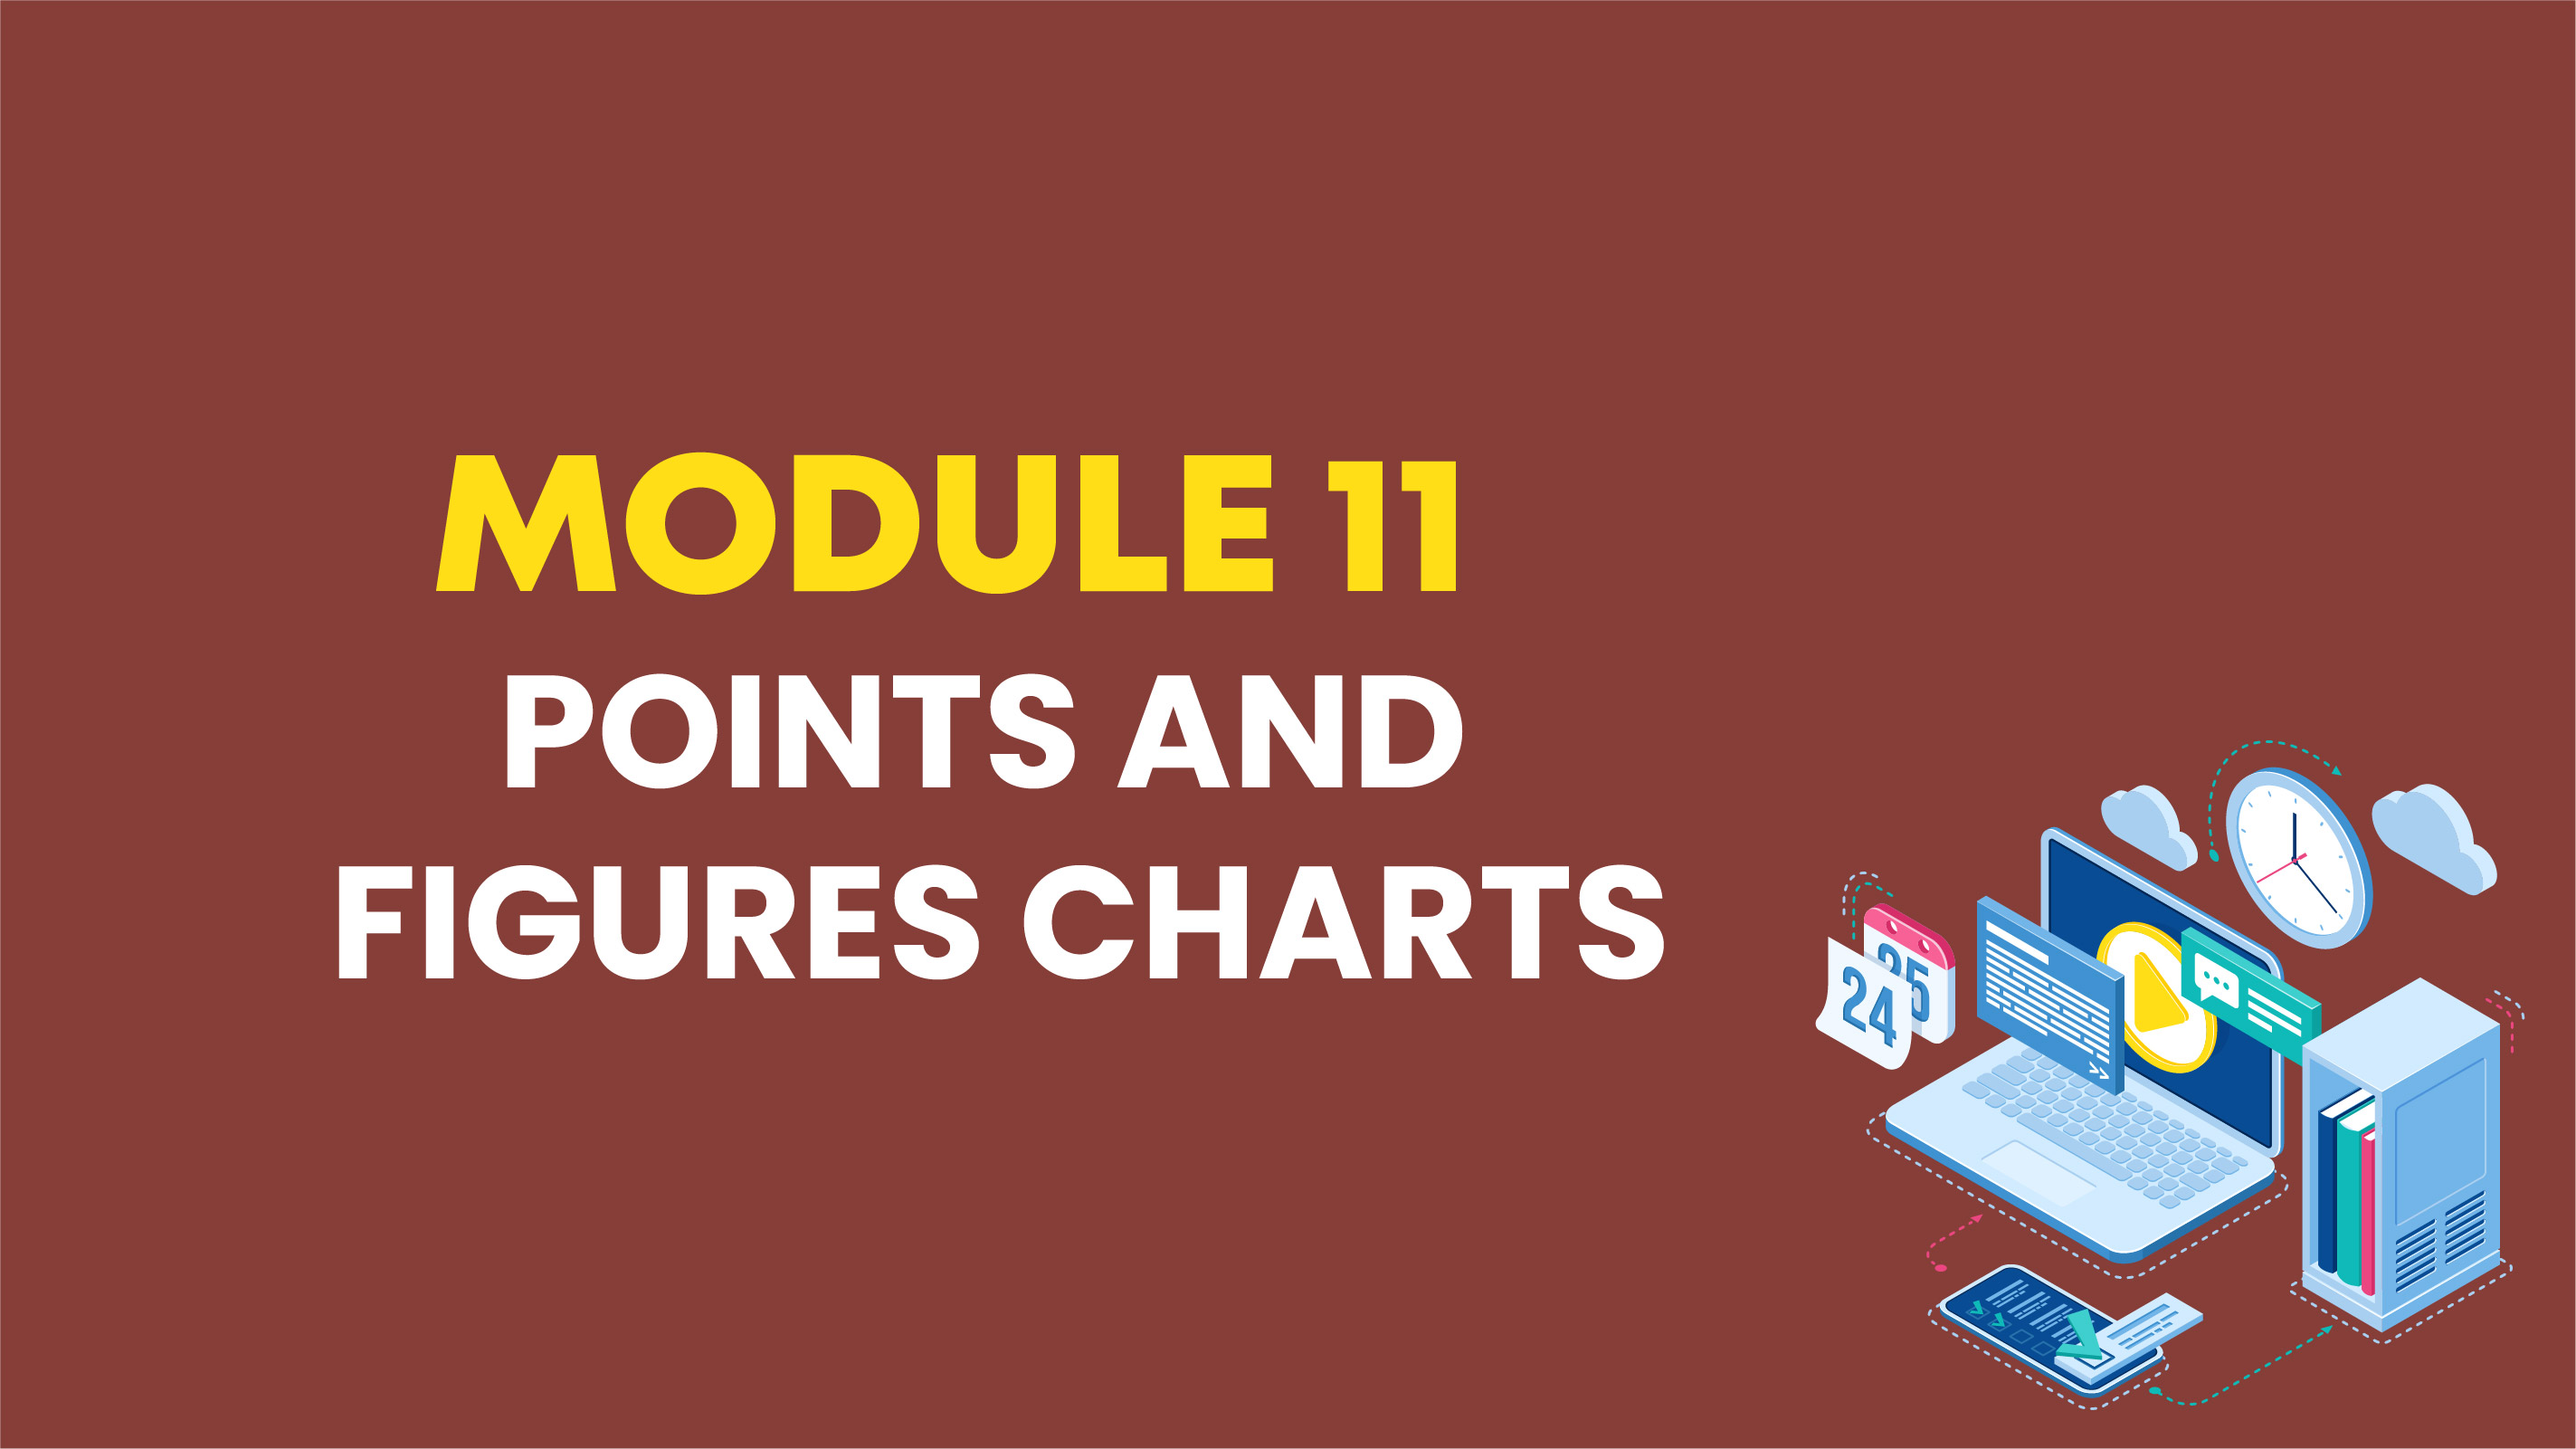 MODULE 11: POINTS AND FIGURES CHARTS